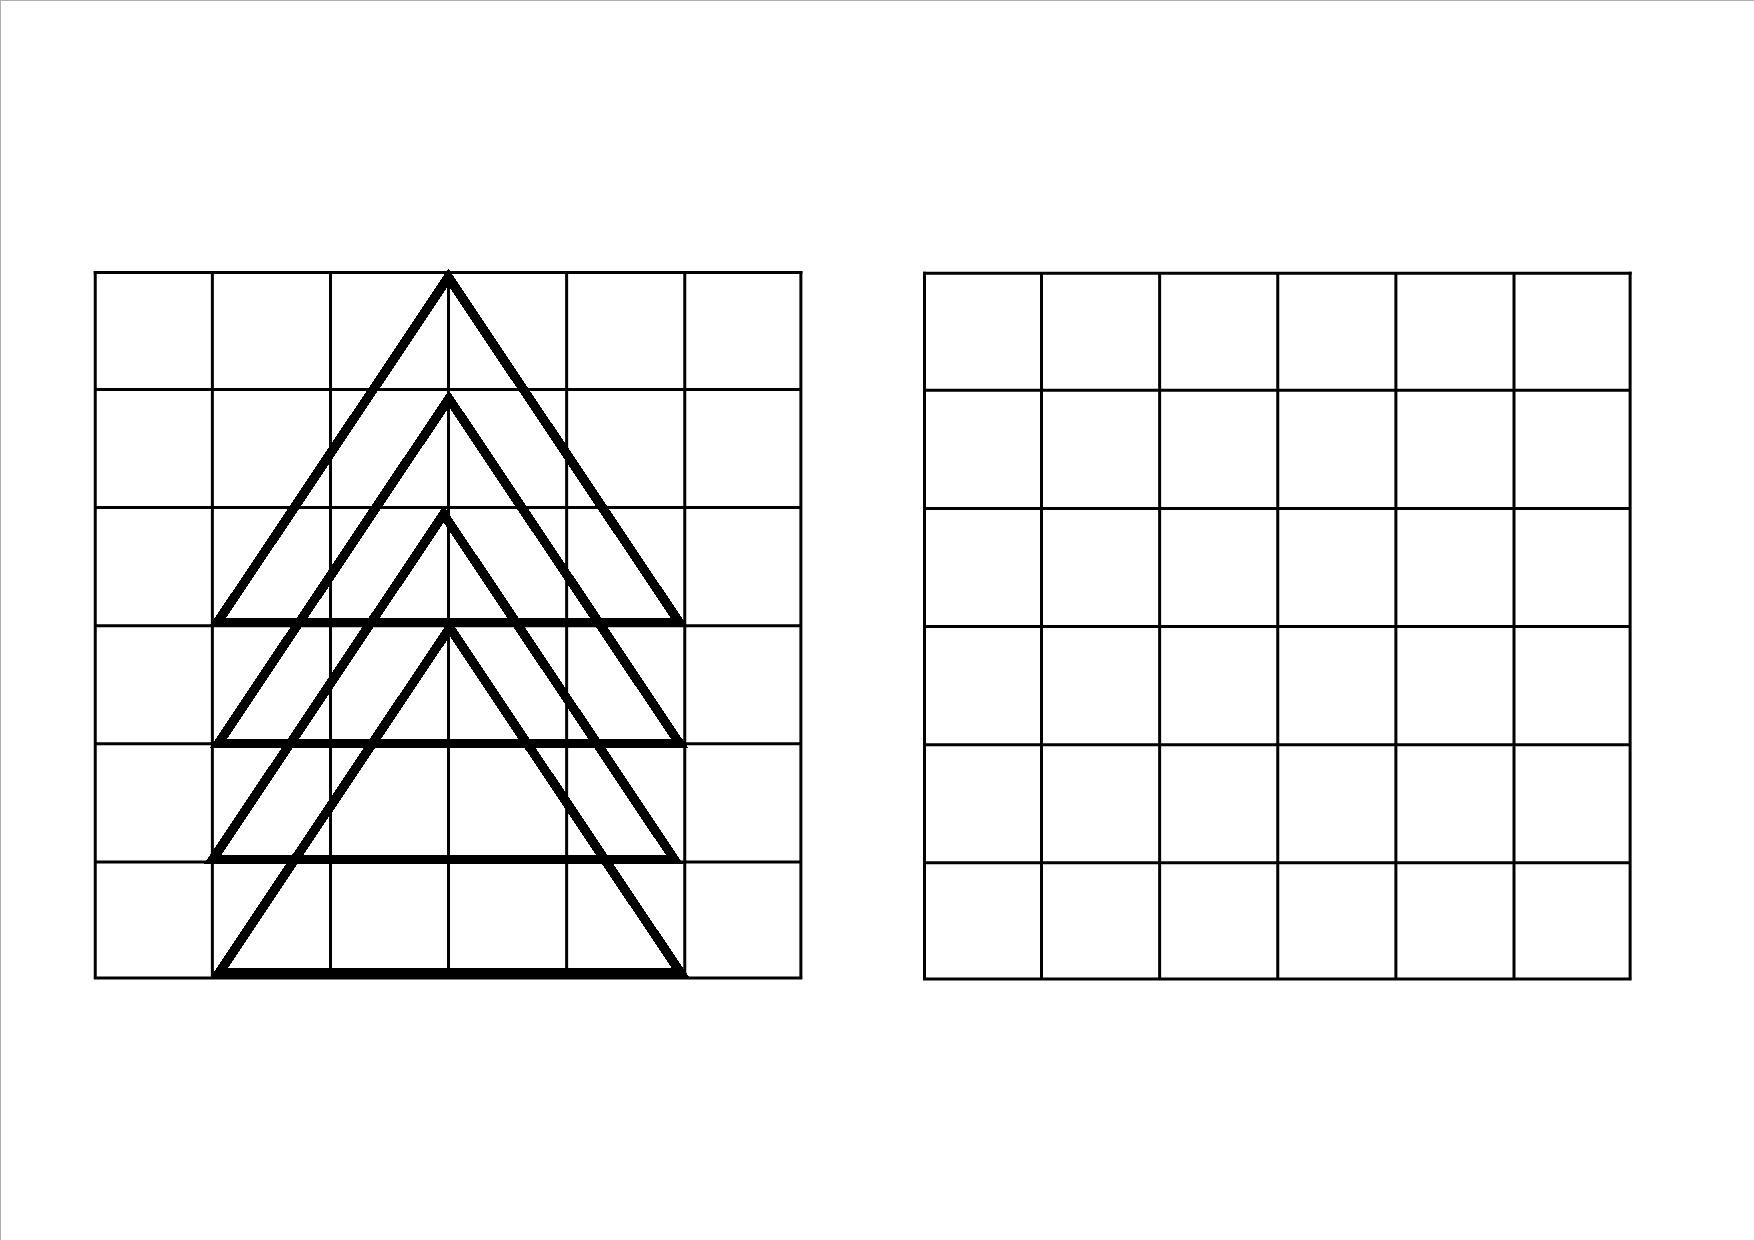 Symmetry Worksheets Mathsalamandercom Maths Symmetry